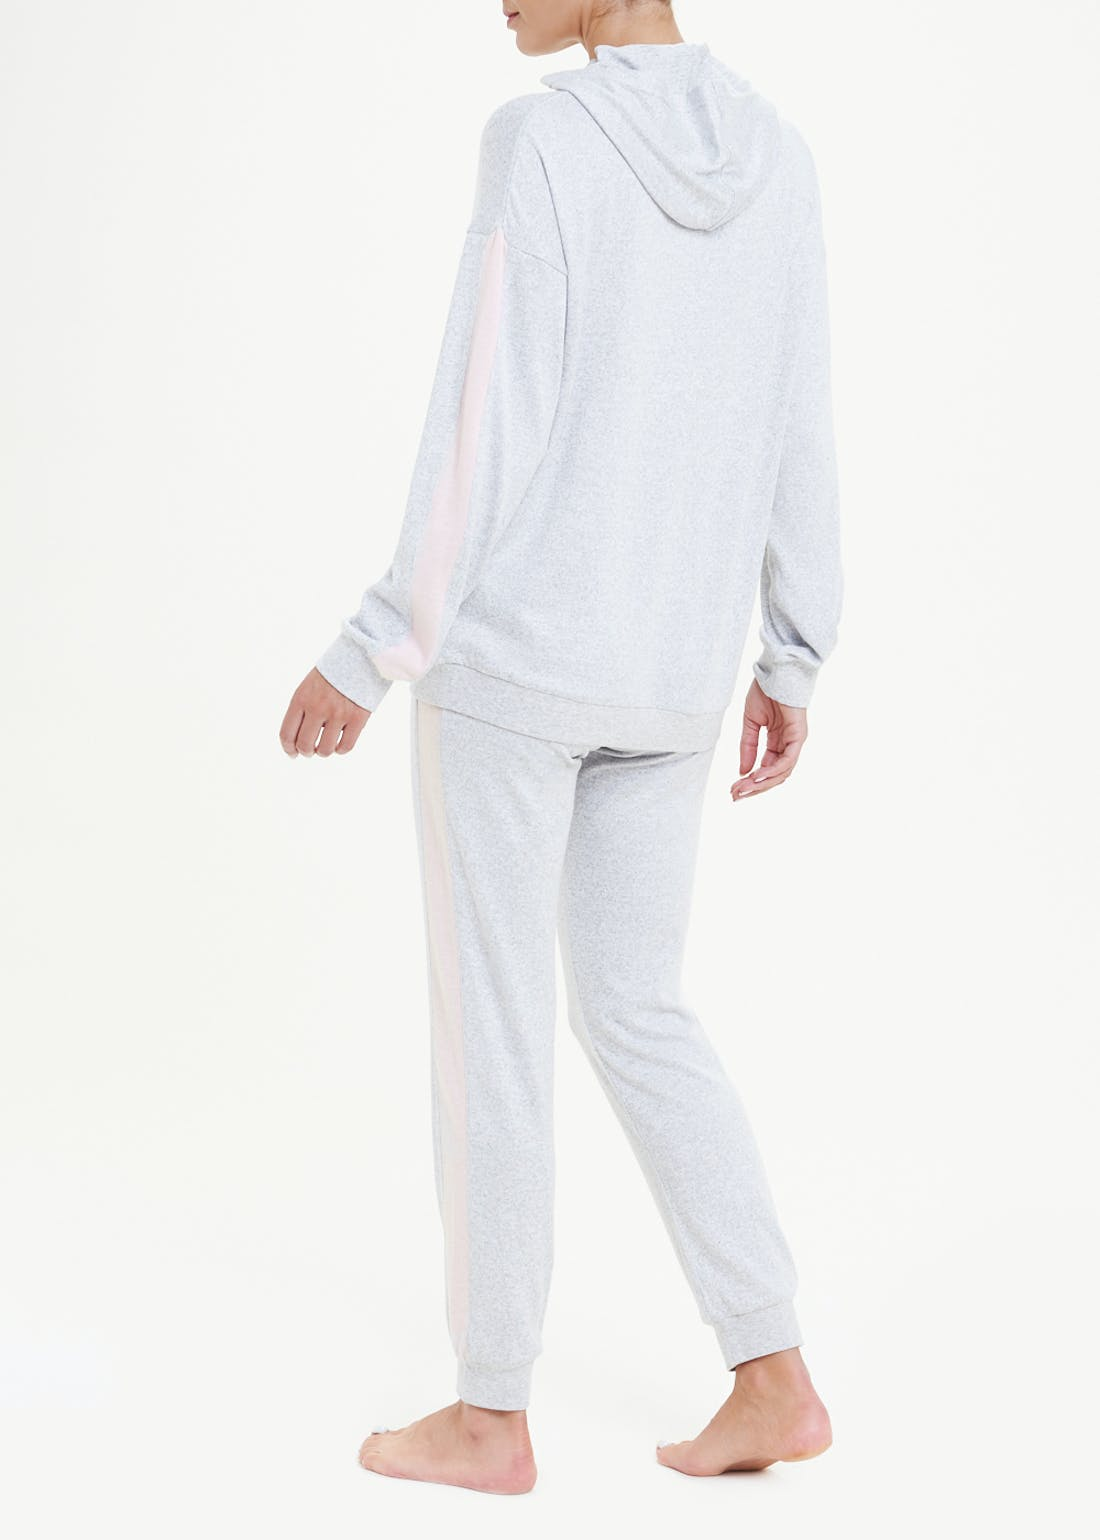 Knitted Sweatshirt Loungewear Set